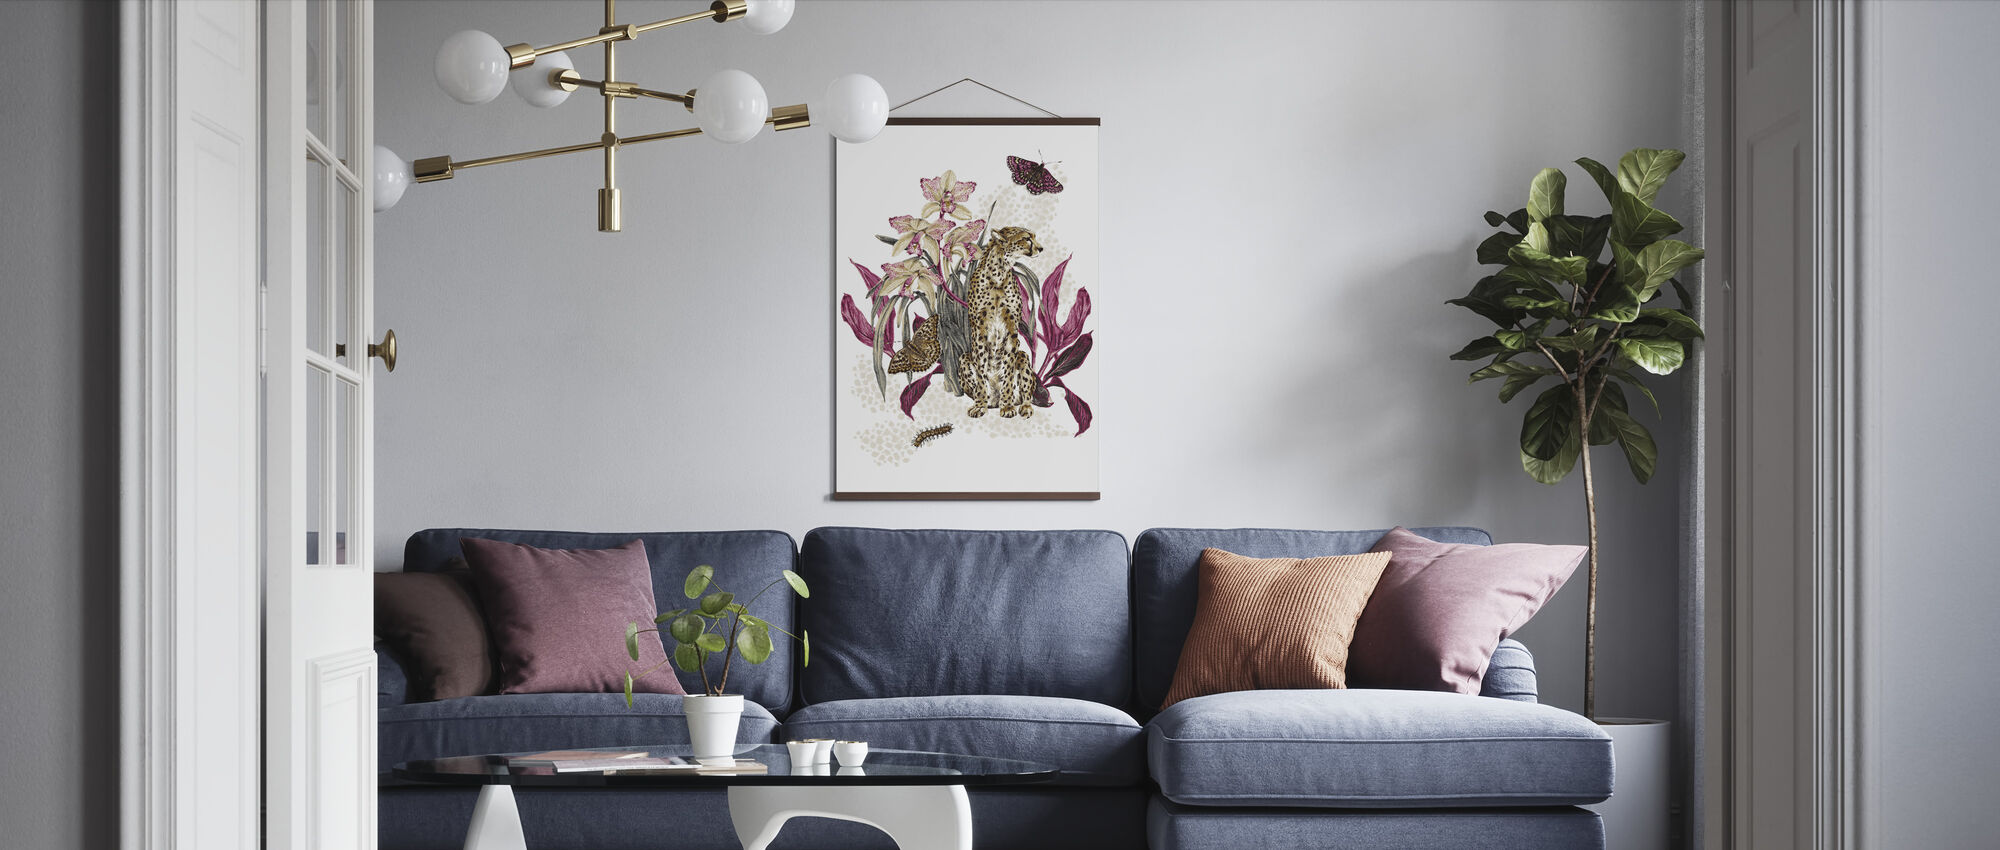 Cheetah Reveries - Cognac and Fuschia - Poster - Living Room